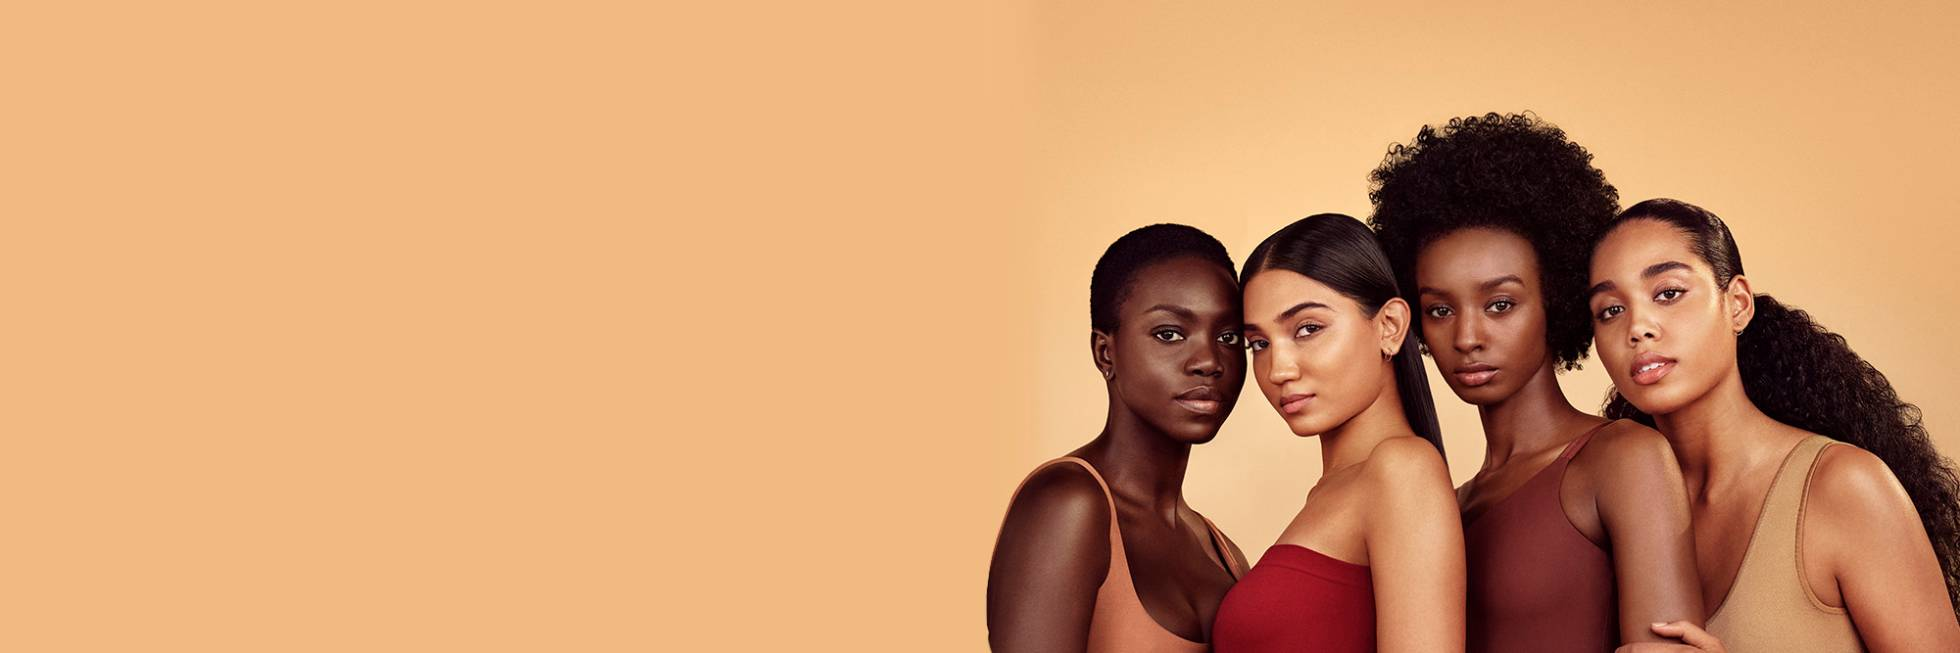 Discover the science behind melanin-rich skin